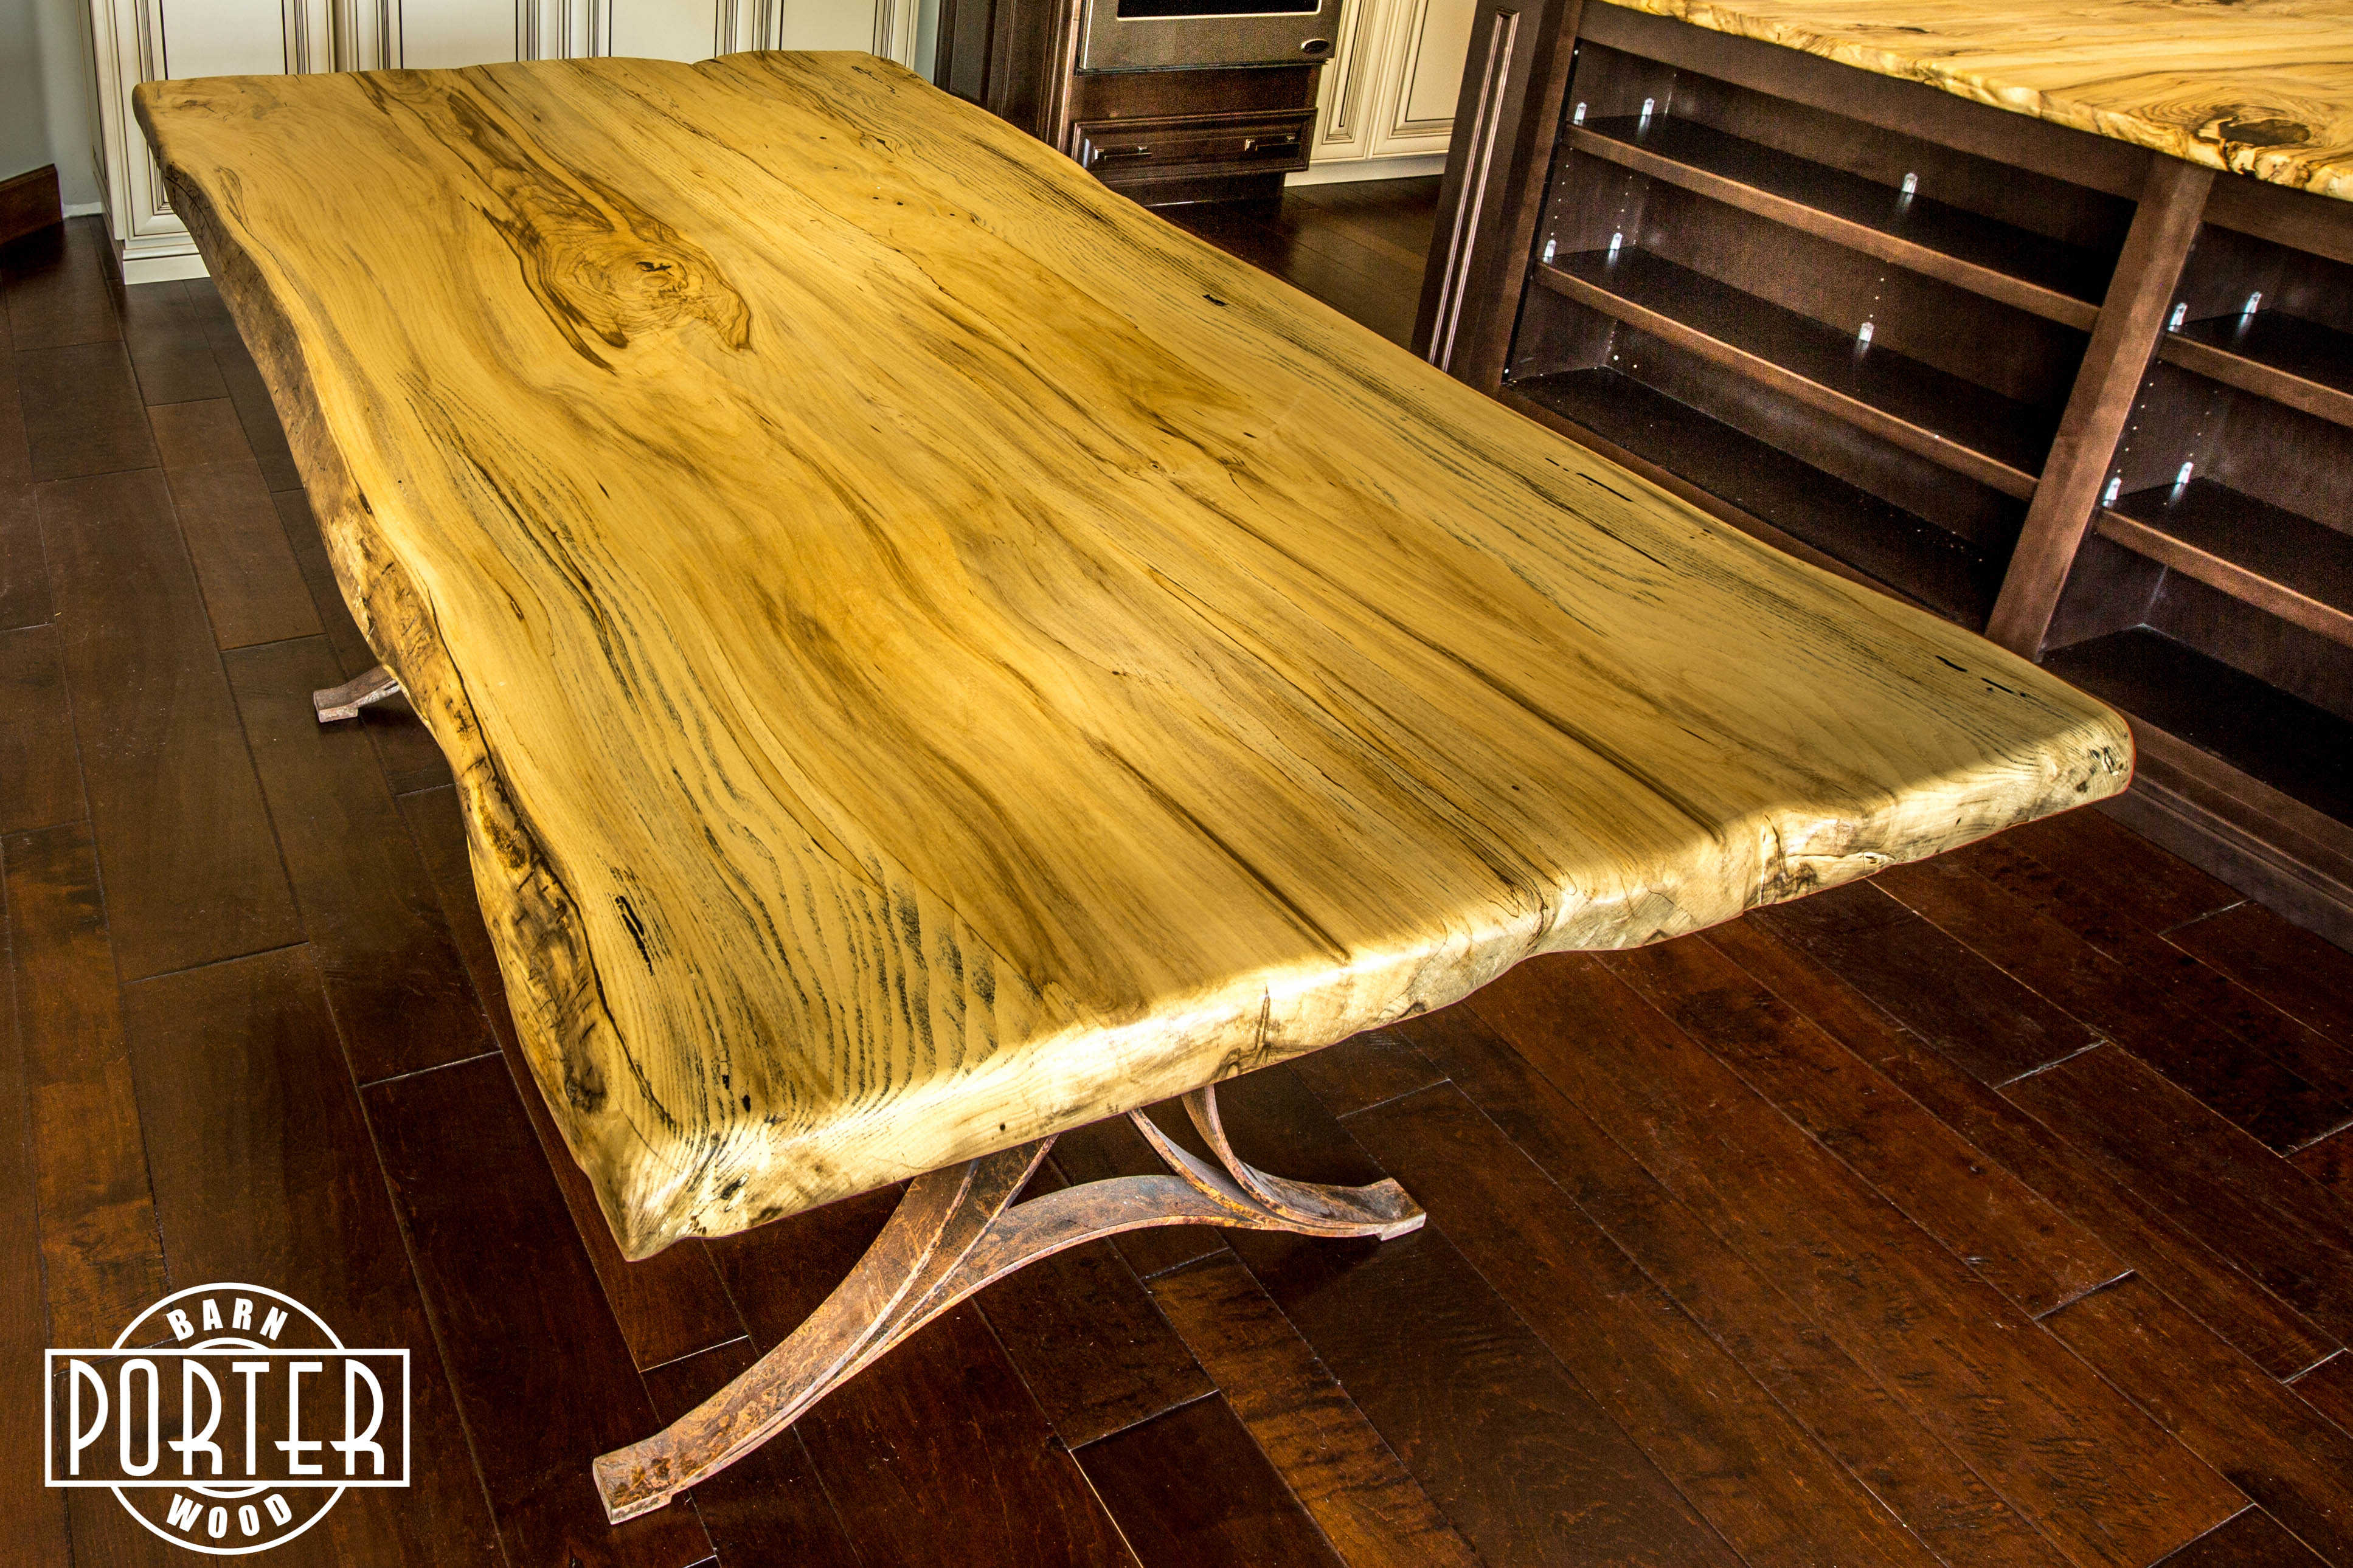 Live Edge Hackberry Dining Table | Porter Barn Wood